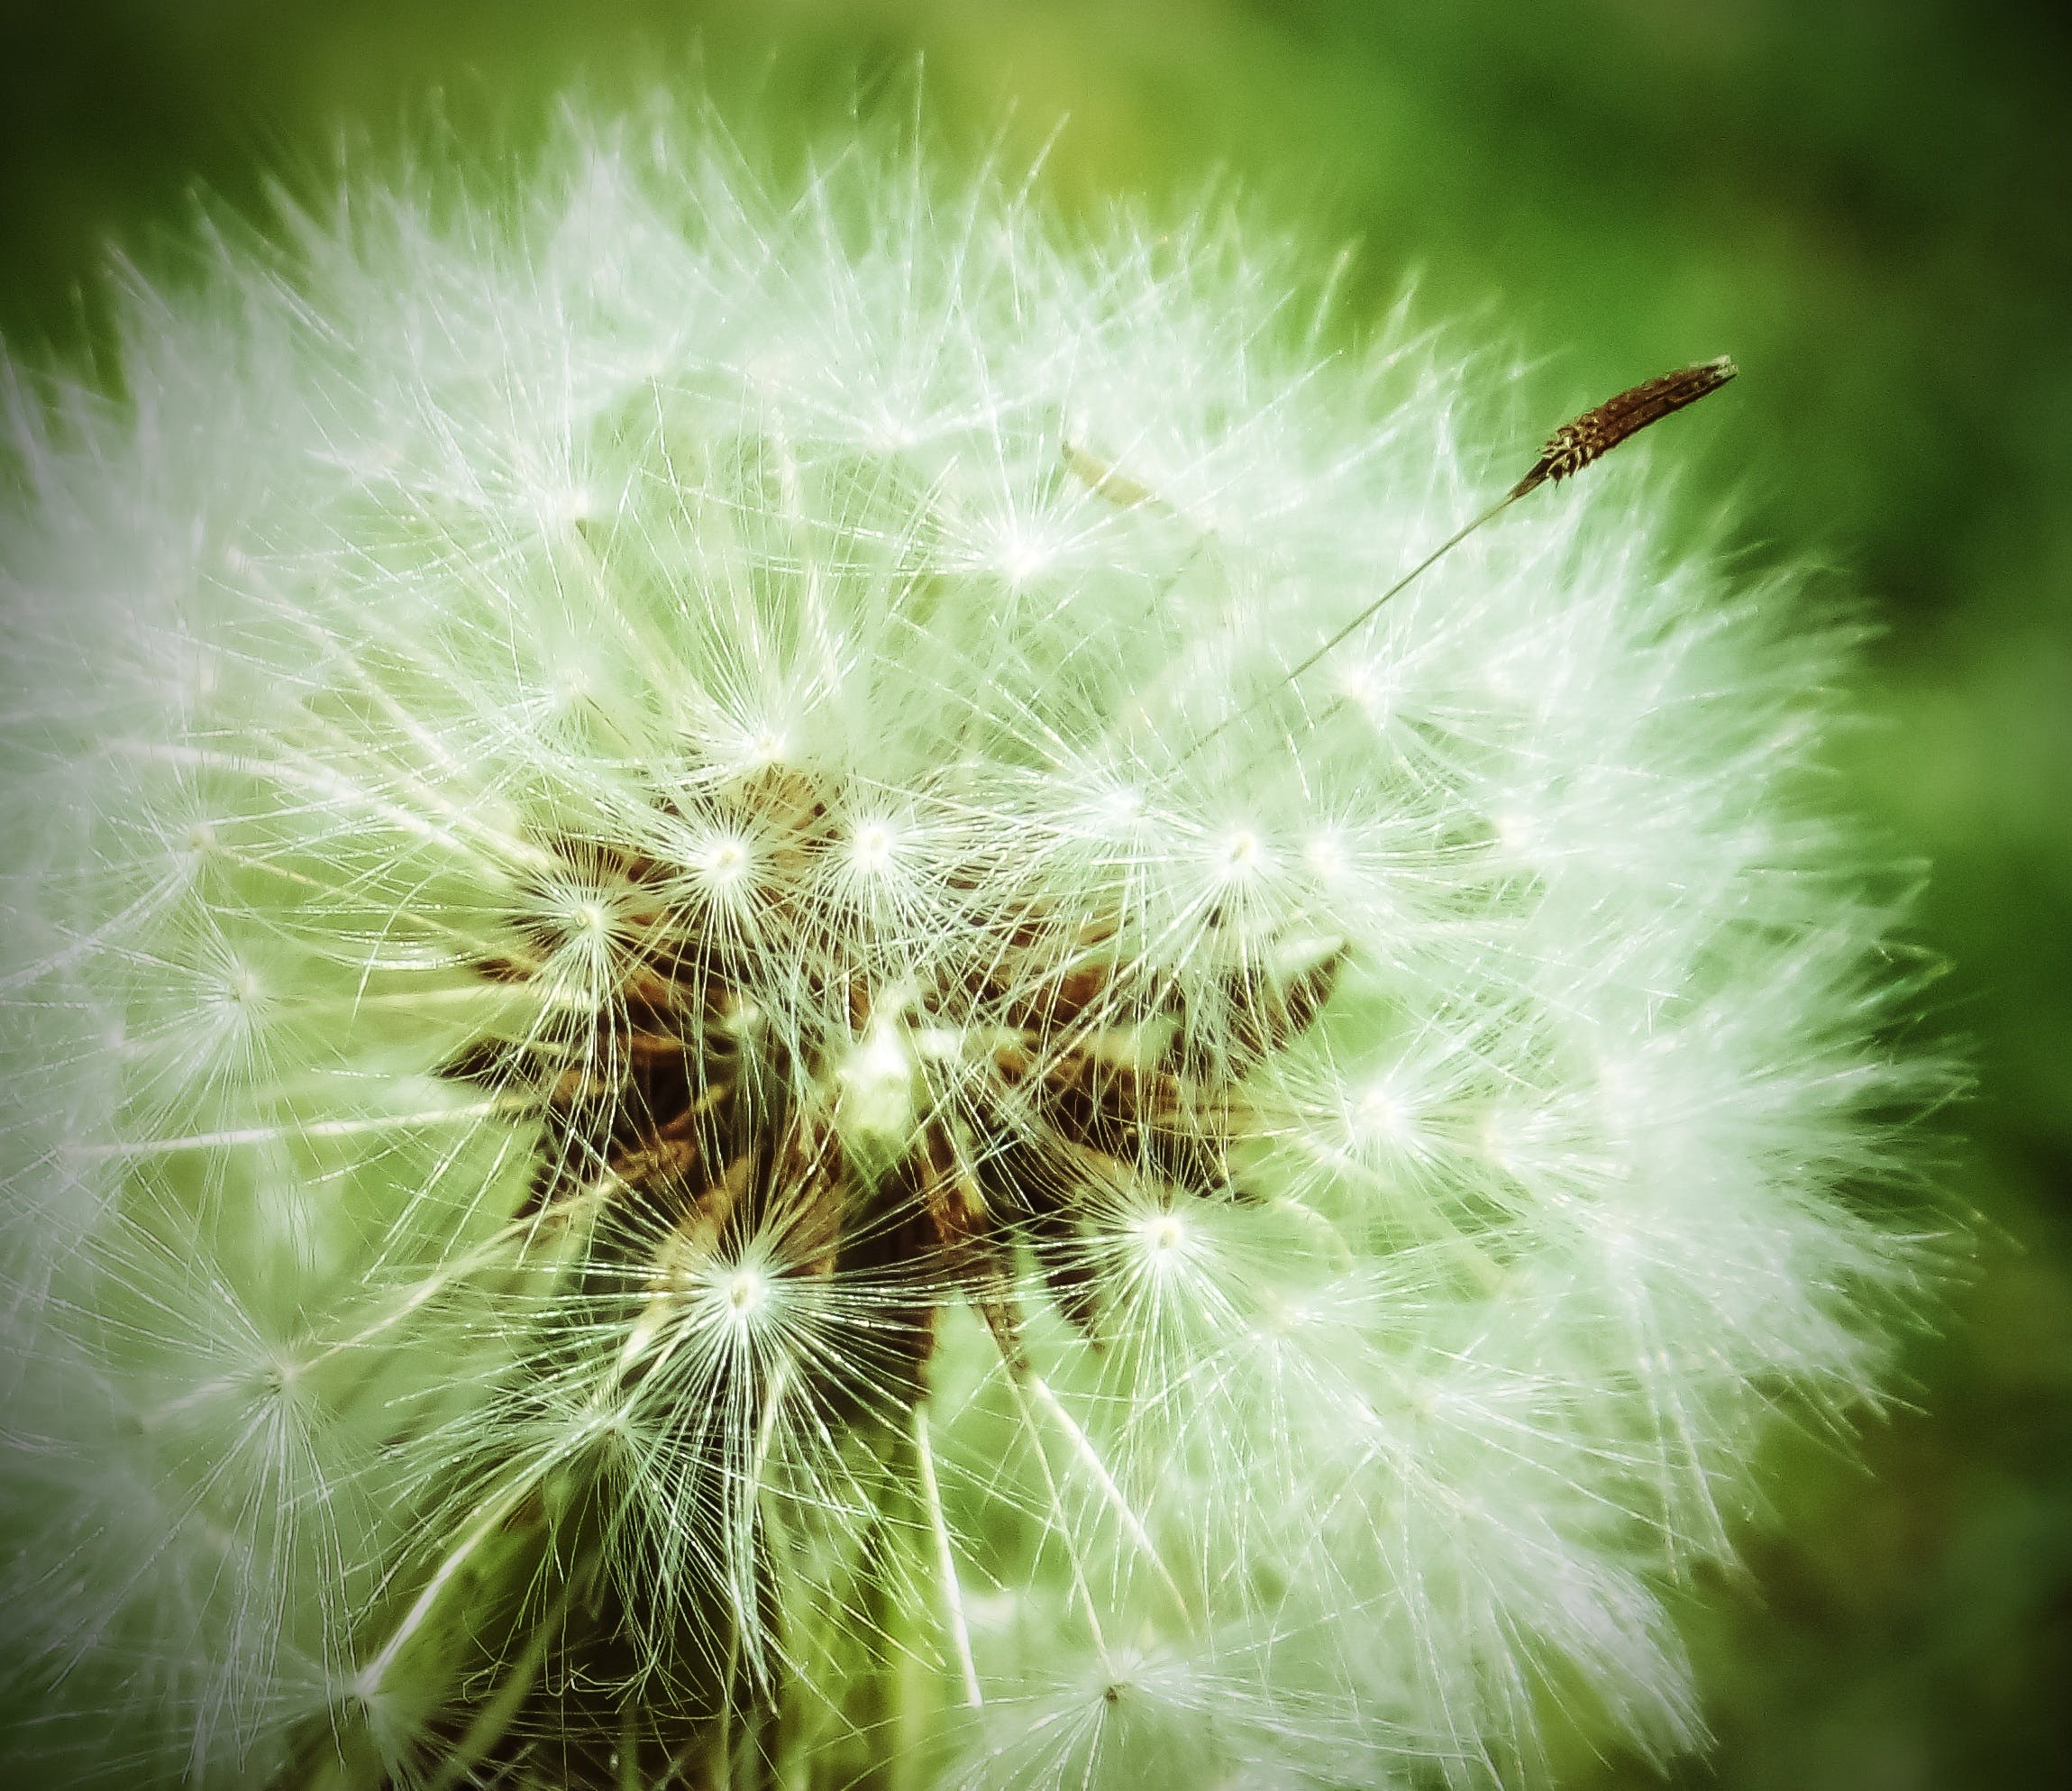 Macro Shot of Dandelion